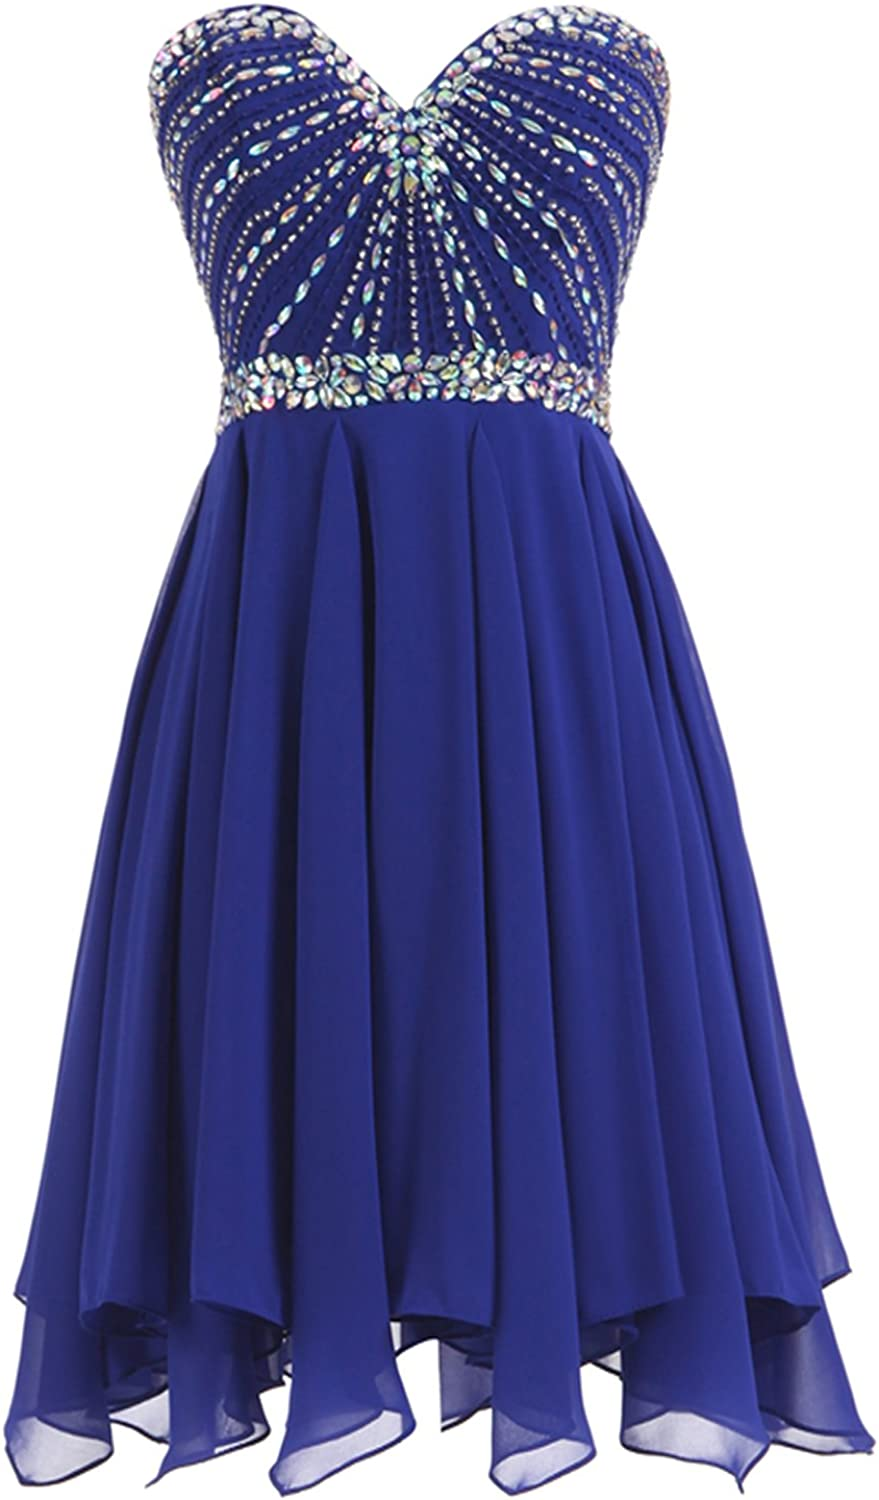 Epinkbridal Crystal Beaded Short Prom Dress Sweetheart Homecoming Dress Party Gowns for Junior